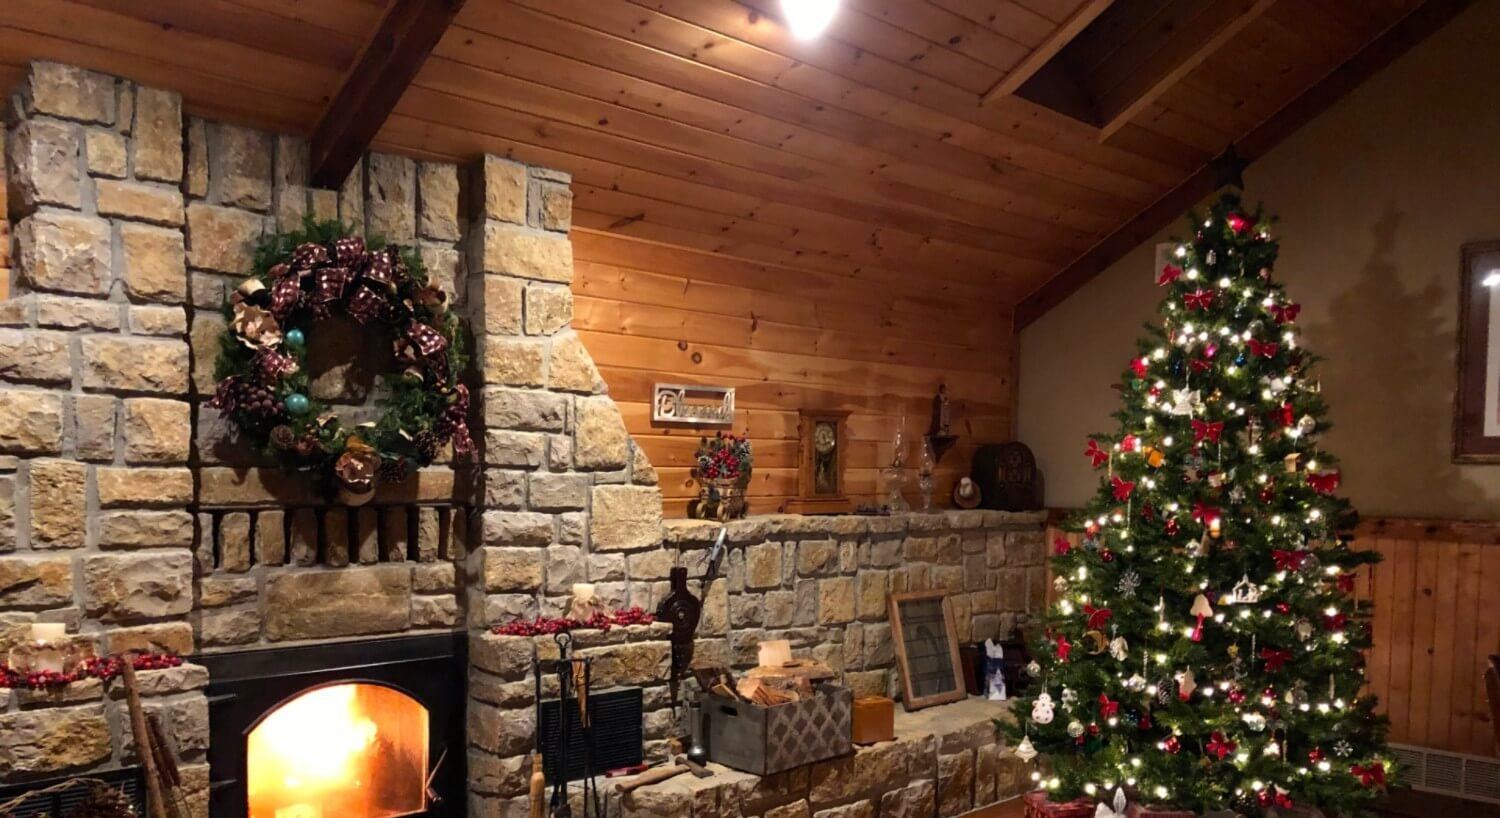 Stone fireplace with christmas wreath and Christmas tree in background